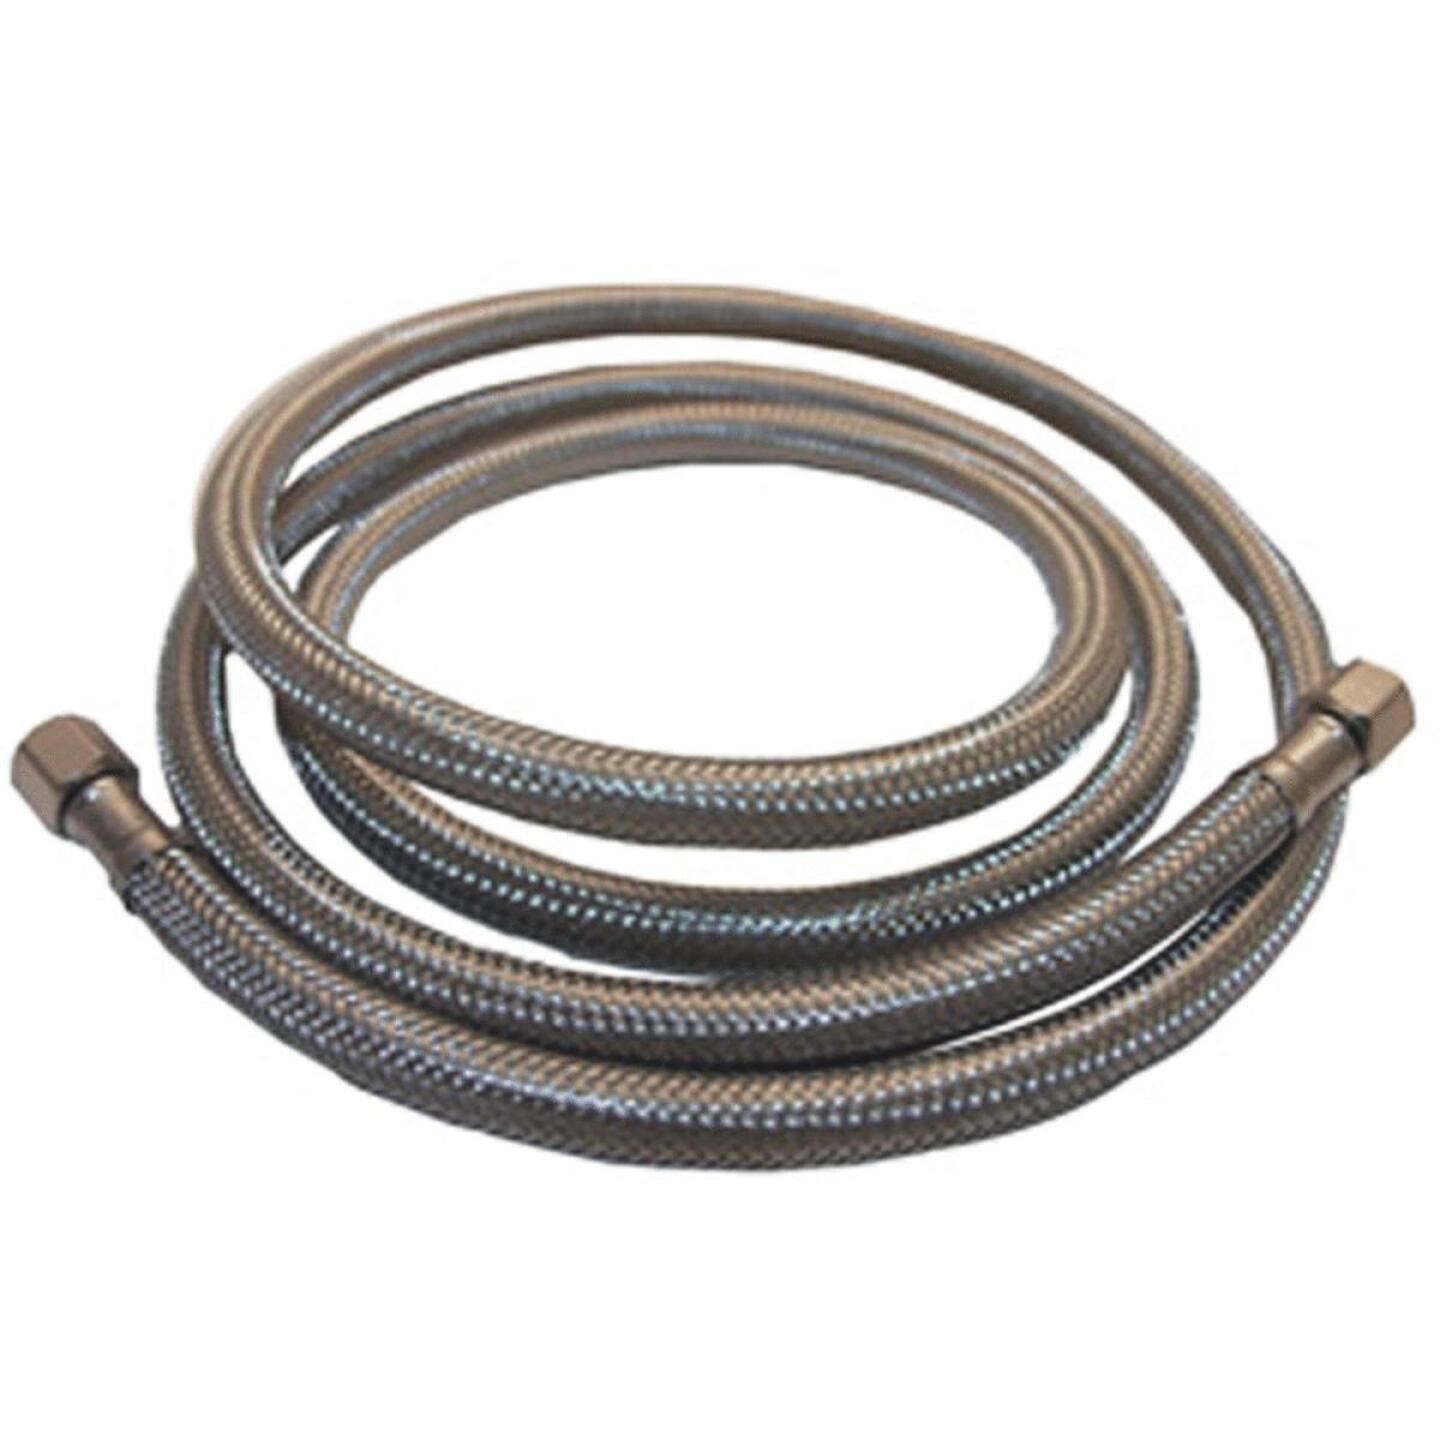 Lasco 1/4 In. x 1/4 In. x 20 Ft. Length Braided Supply Ice Maker Connector Hose Image 1